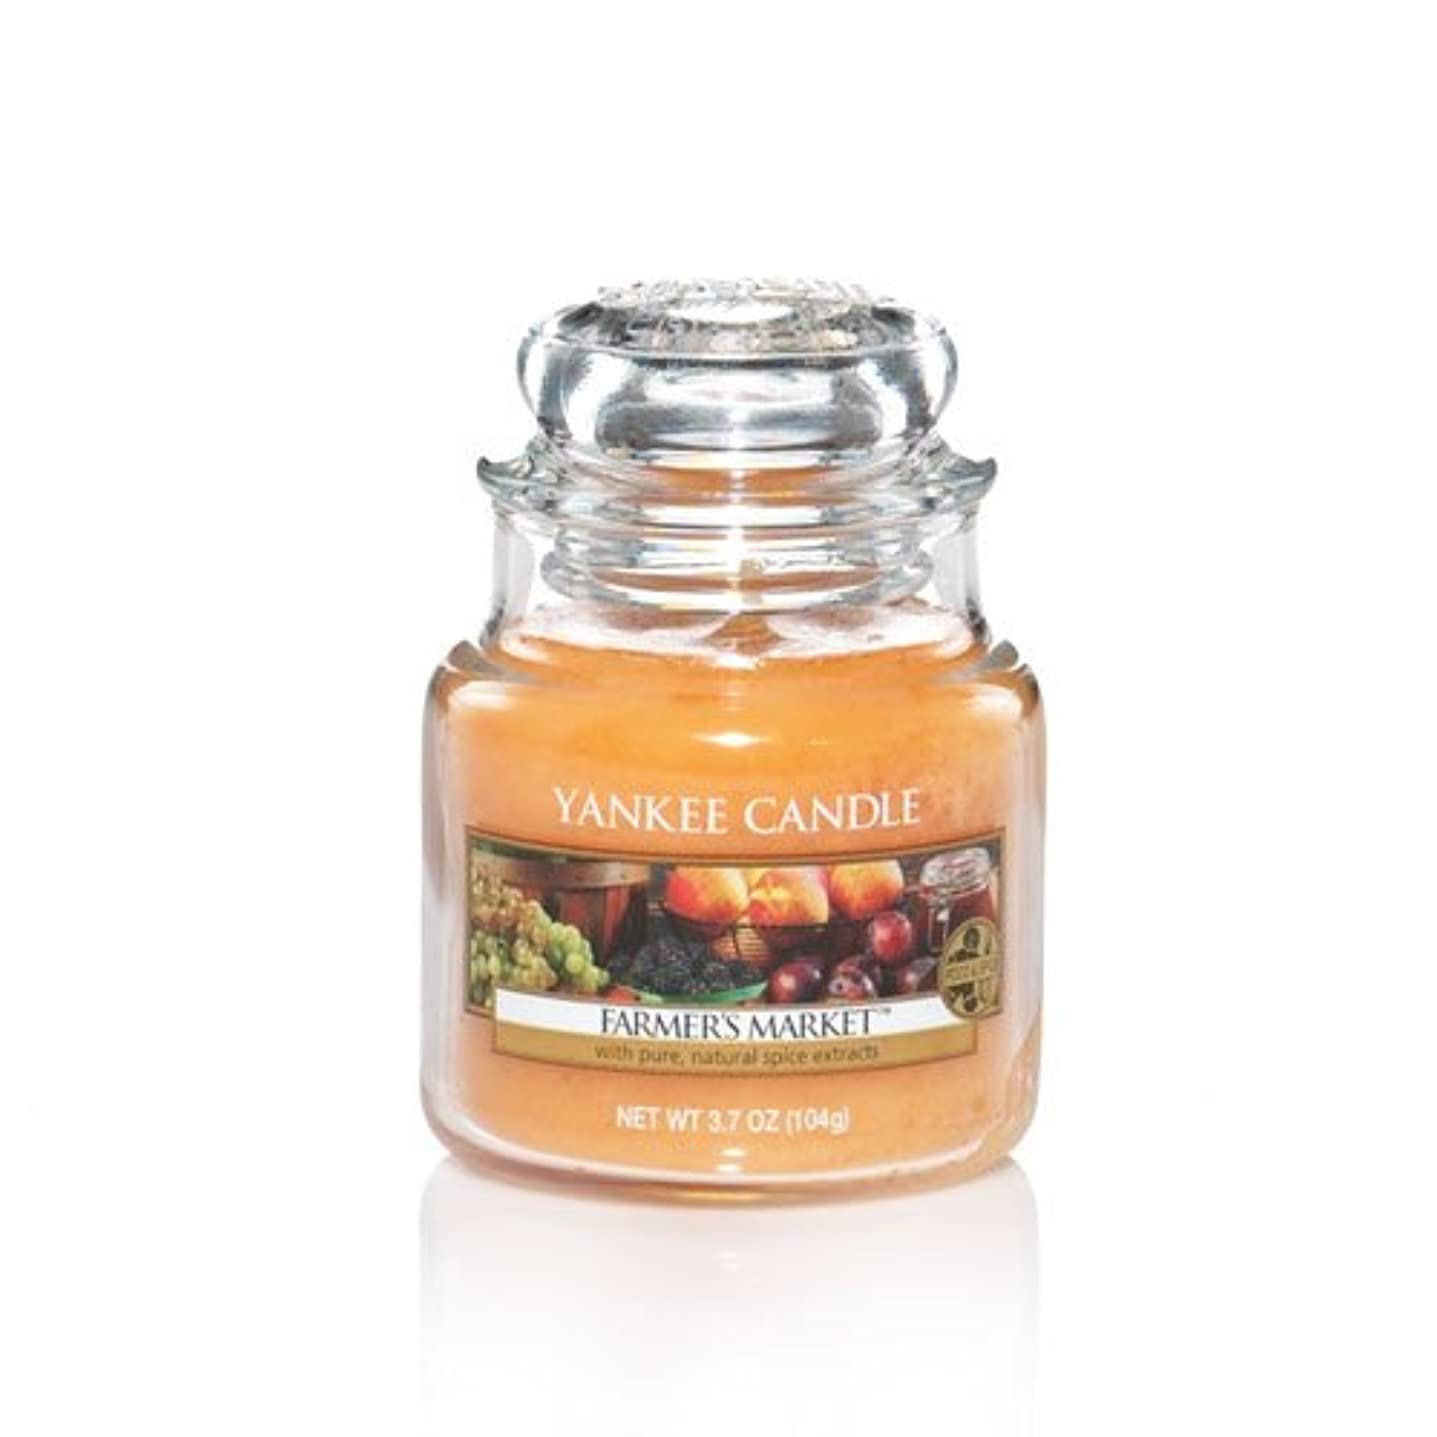 充電エスカレーター群衆Yankee Candle Farmer 's Market Small Jar Candle, Food & Spice香り